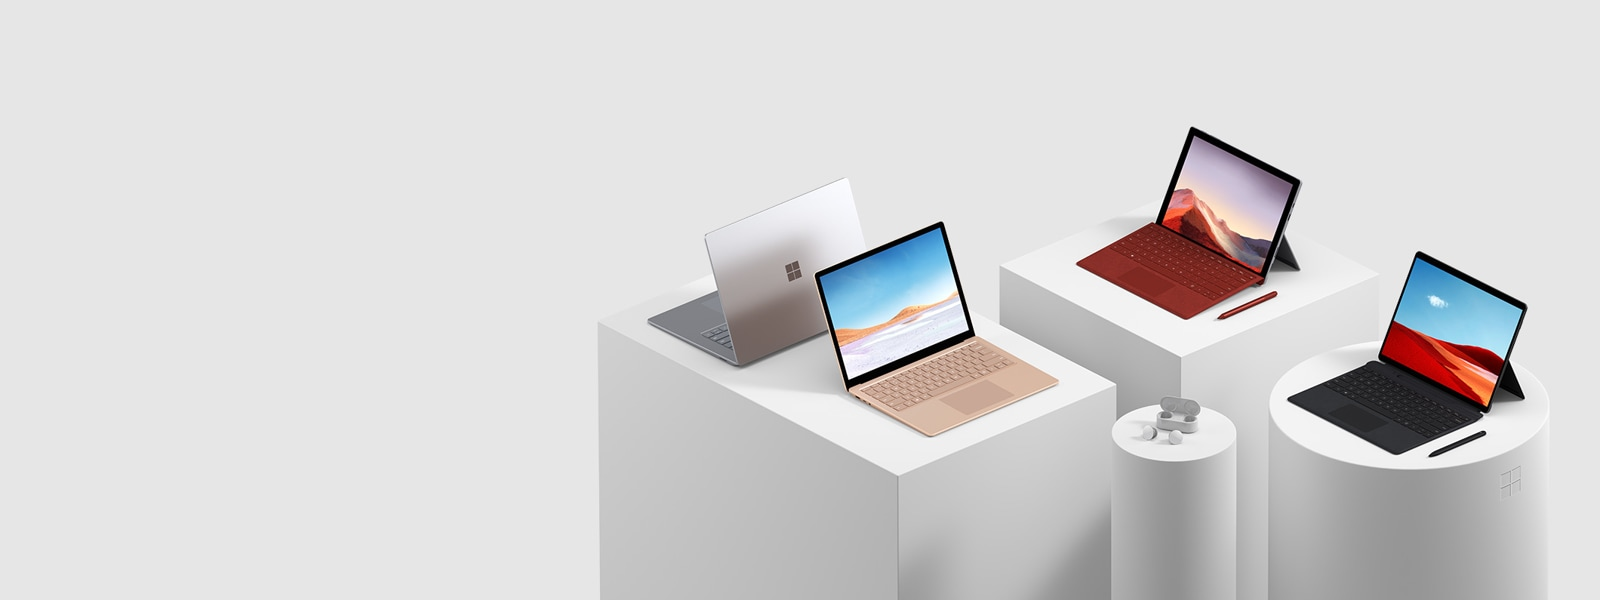 A display of Surface computers and tablets.